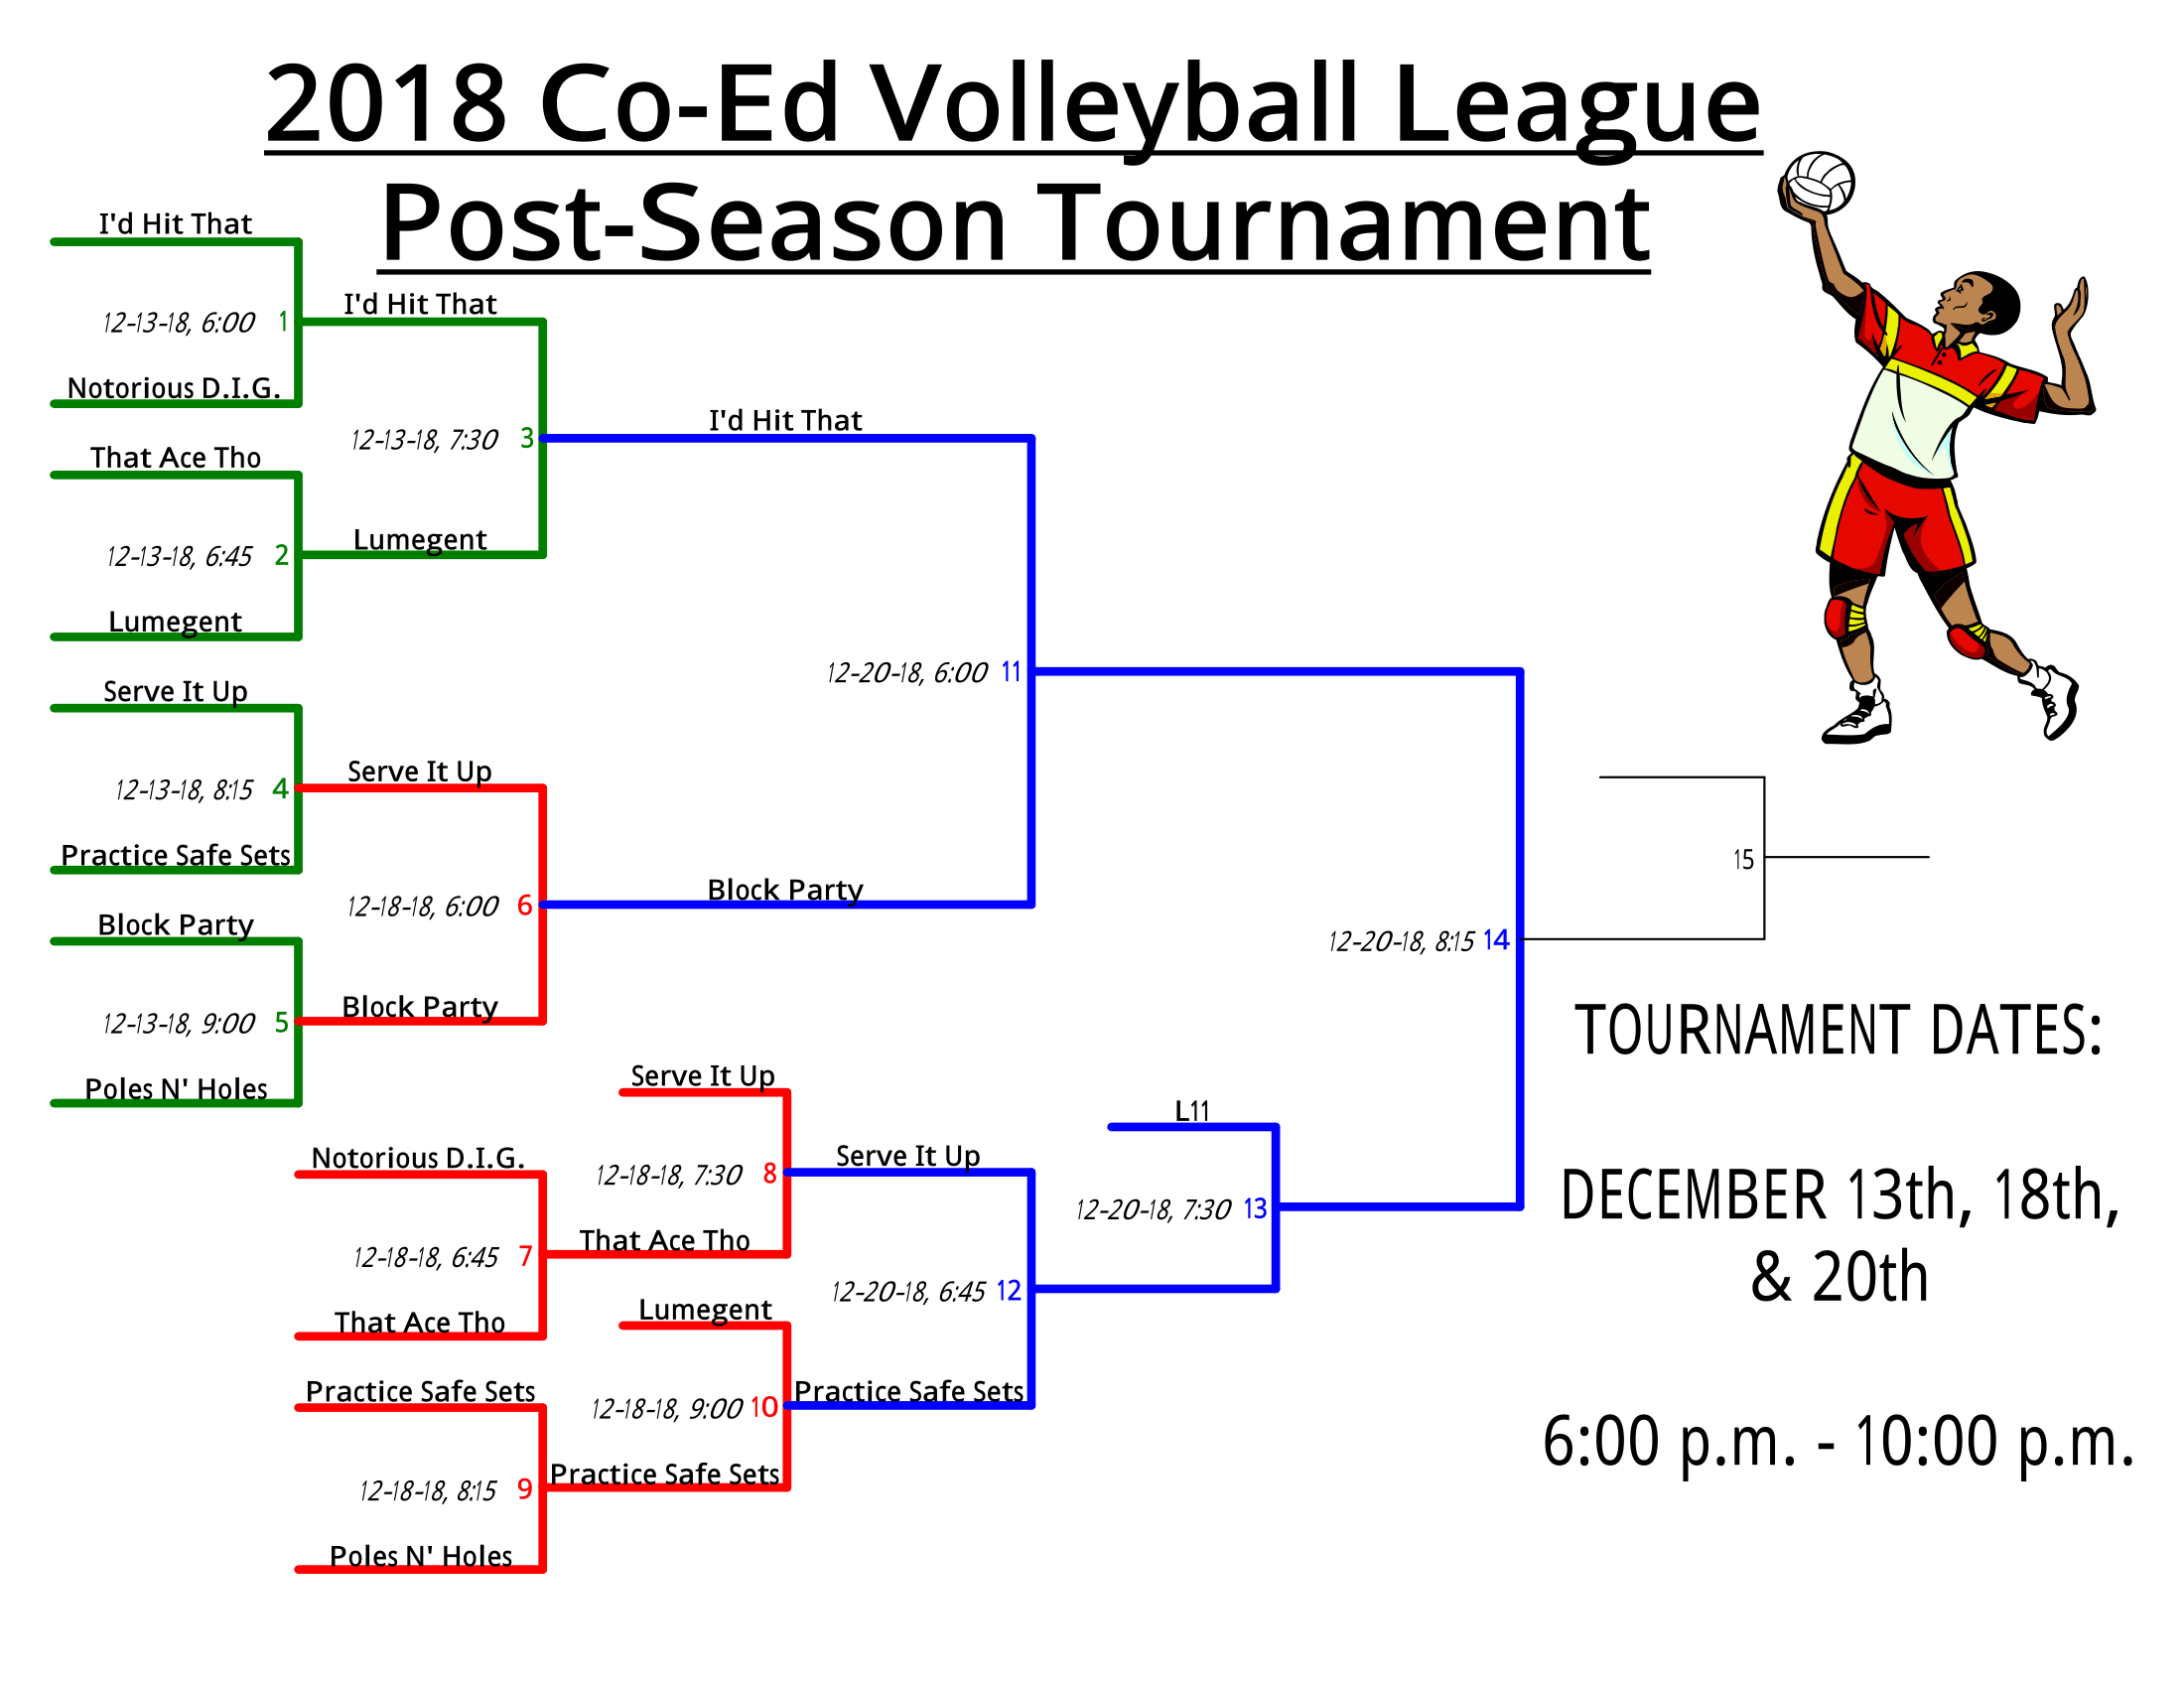 Co-Ed Volleyball (2018) - Tournament Schedule.png